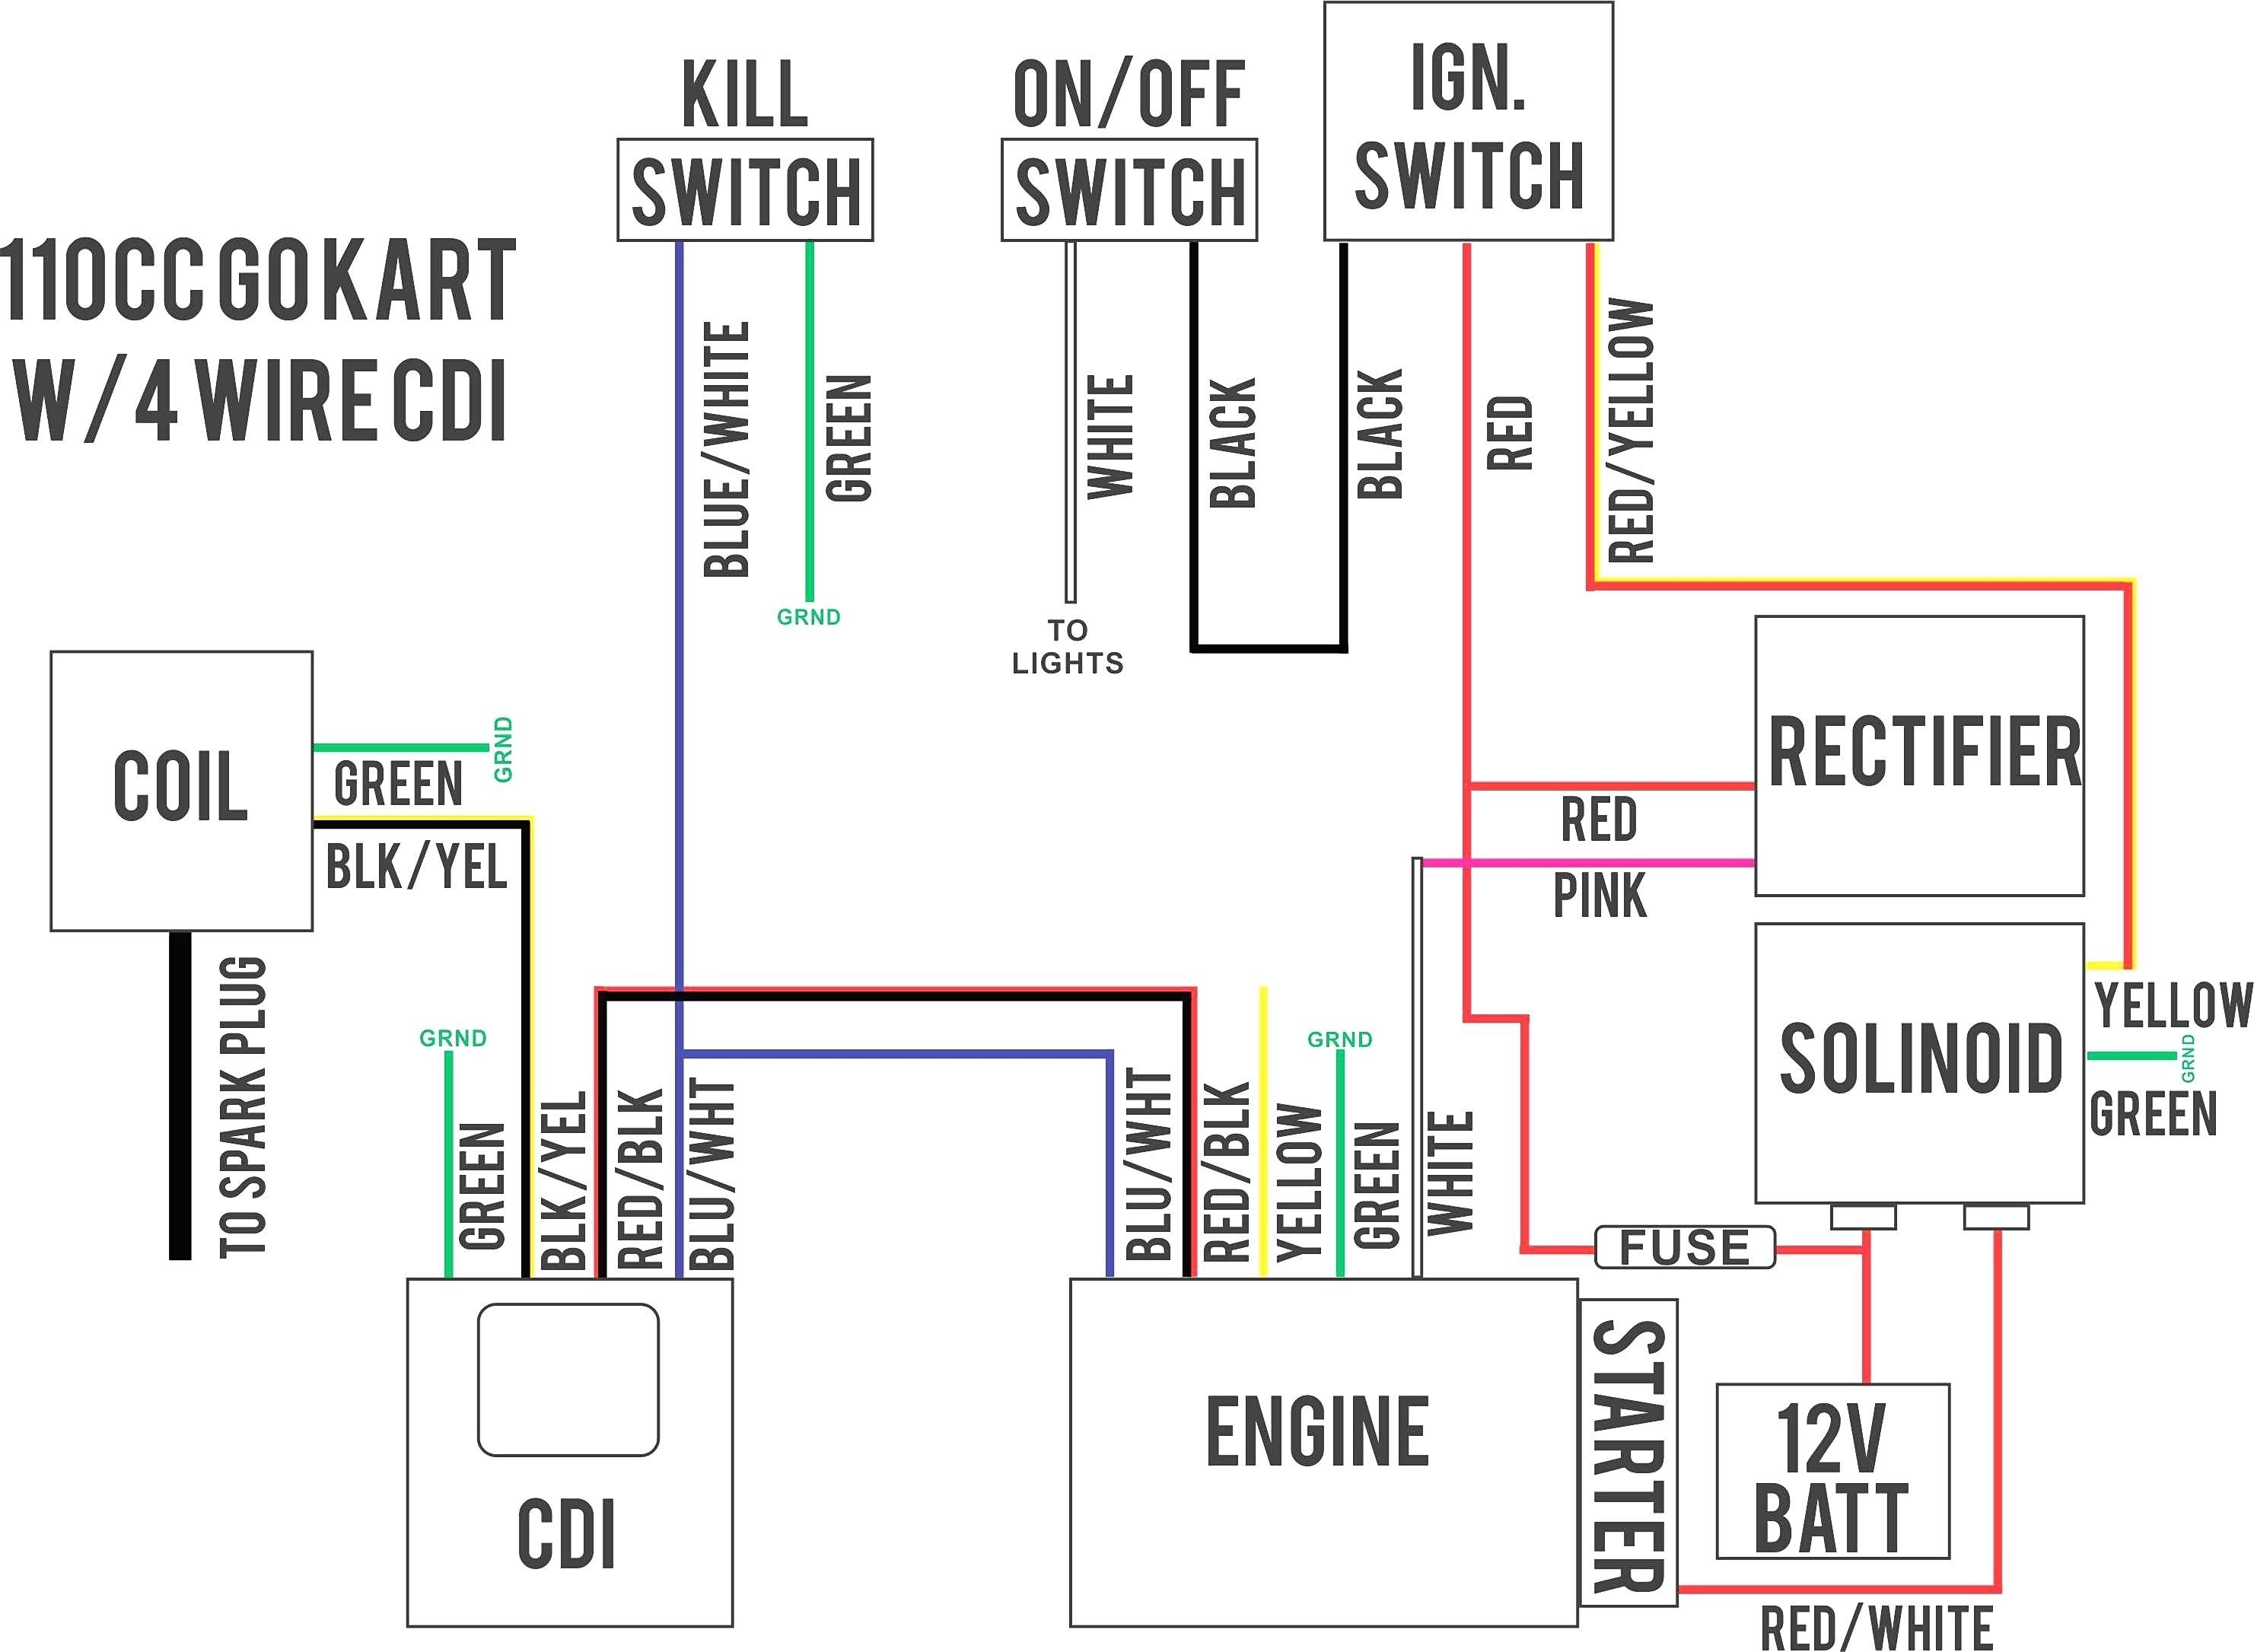 Wiring Diagram for A Chinese 110 atv Electrical Wiring Diagram Motorcycle with Images